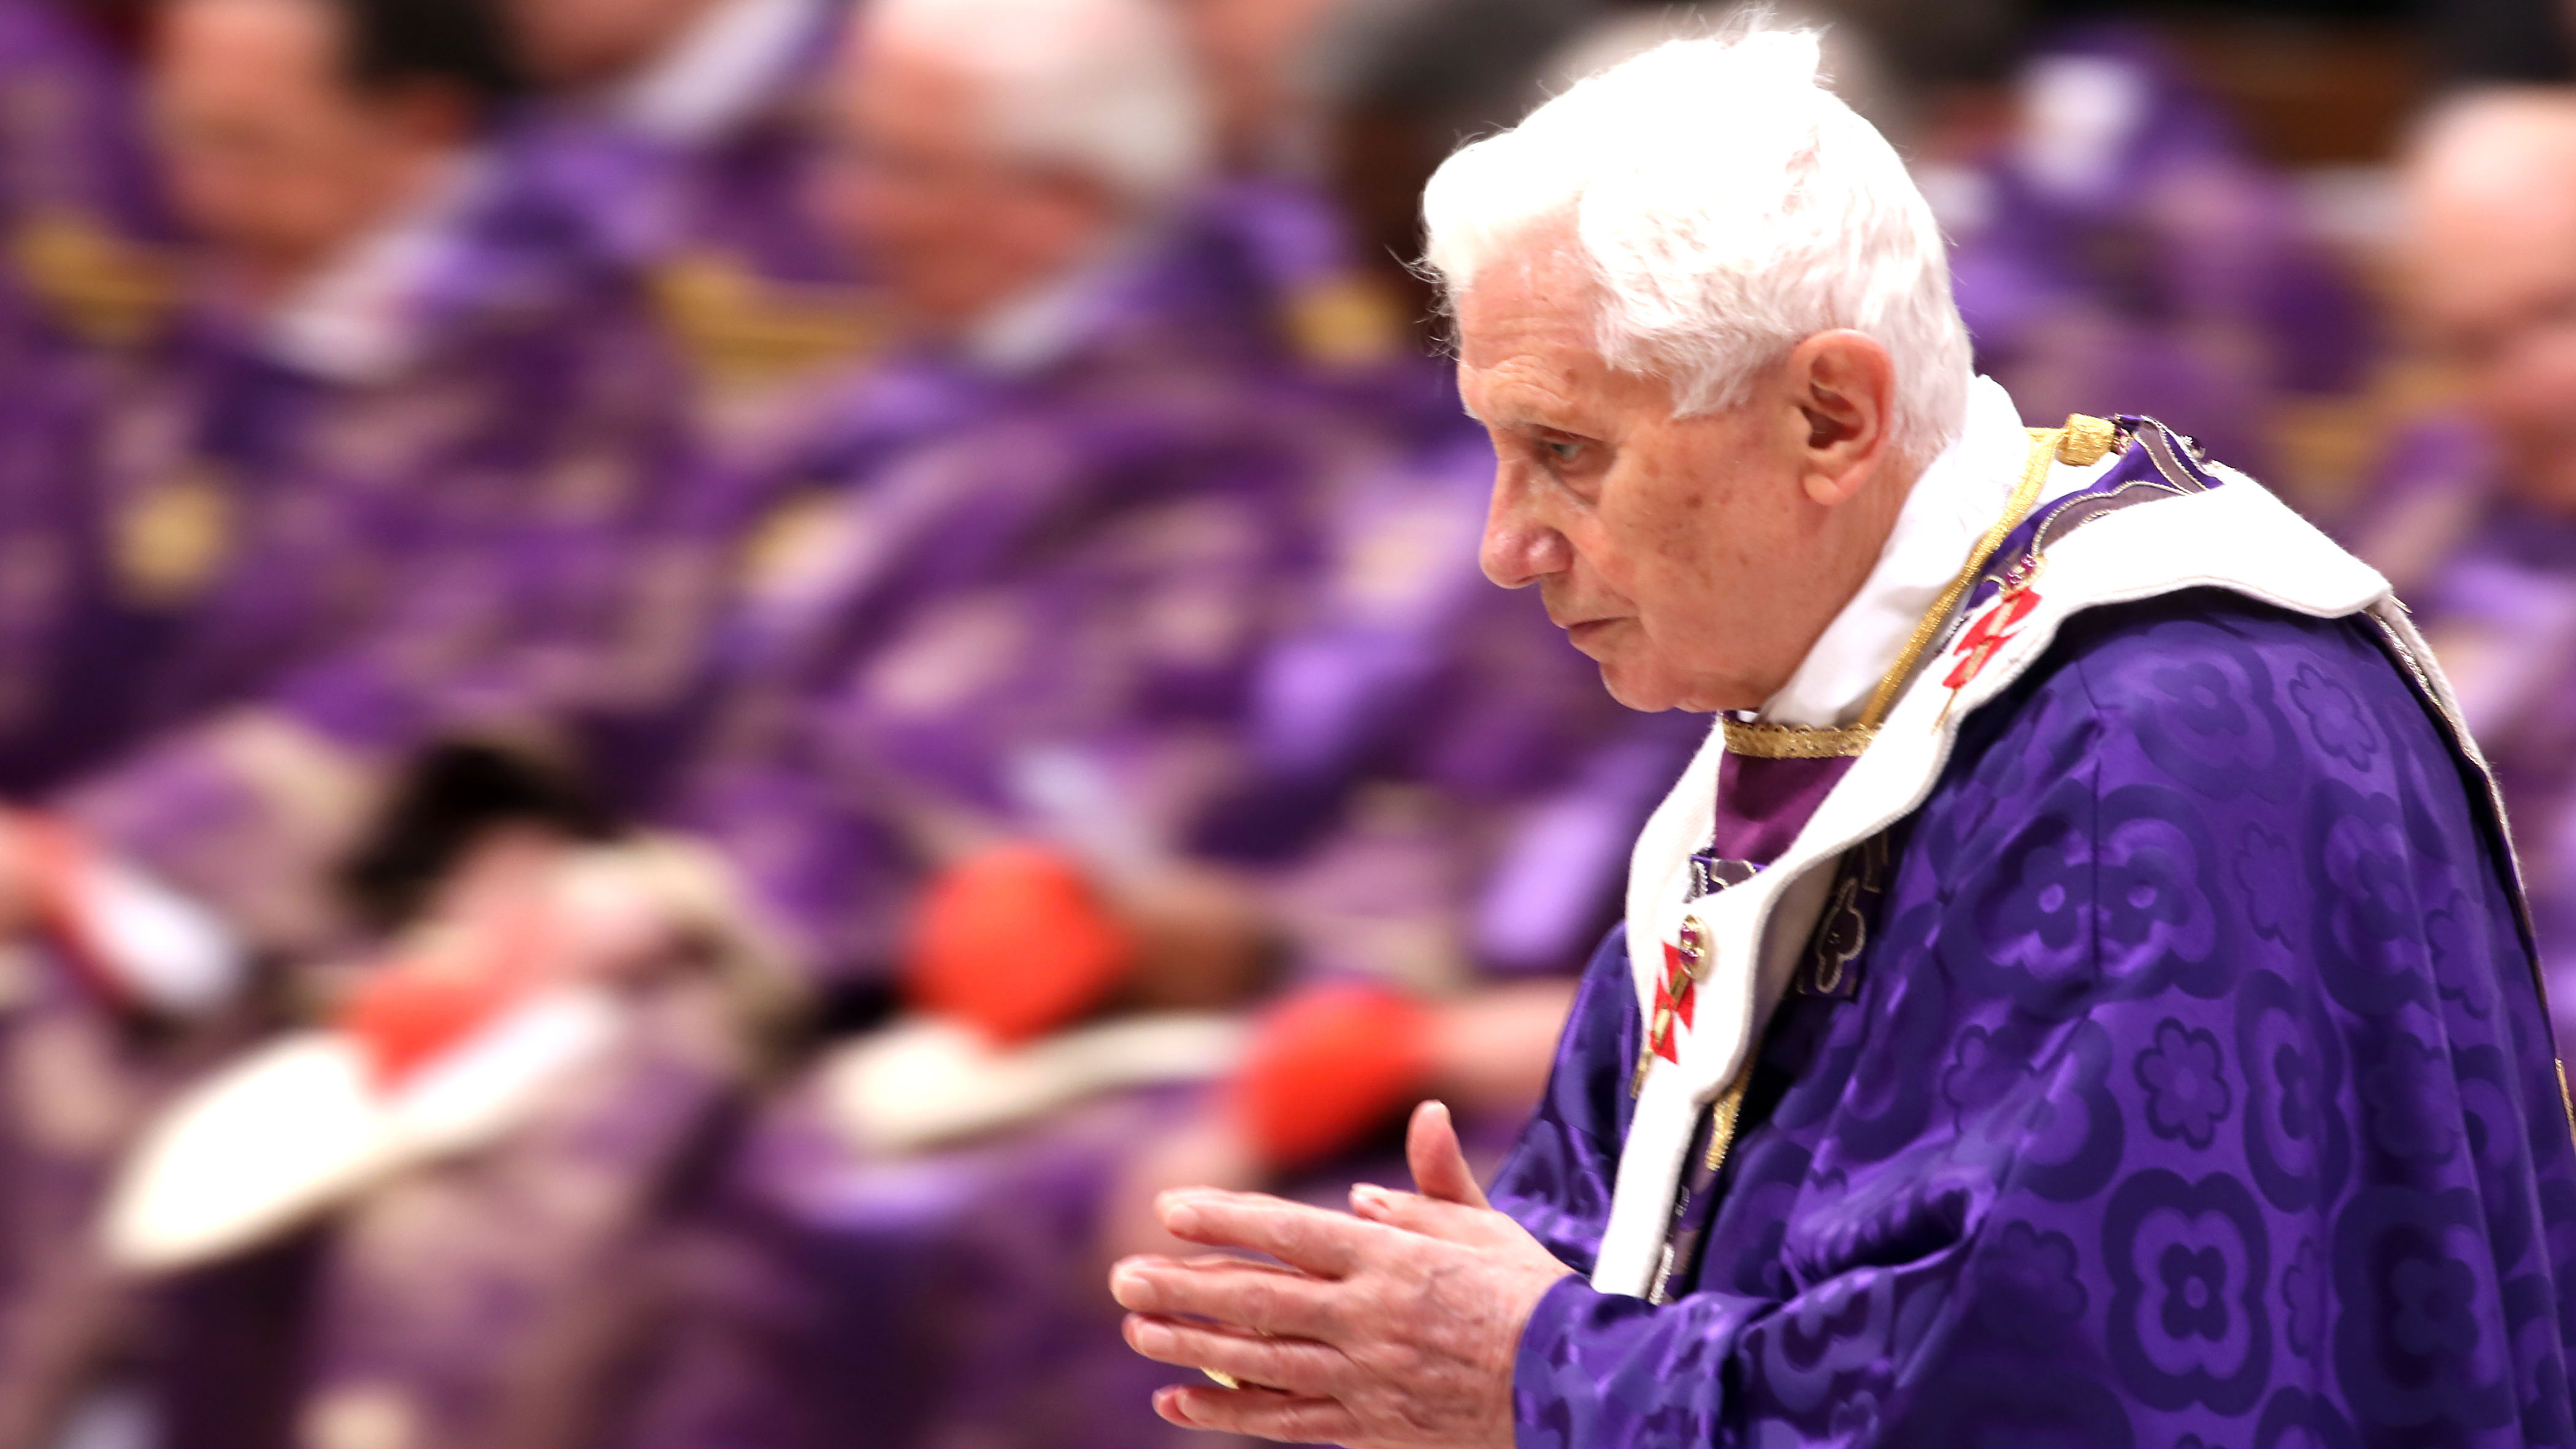 PHOTO:The Vatican maintains that advanced age caused Benedict to step down, but some insist his health is failing.